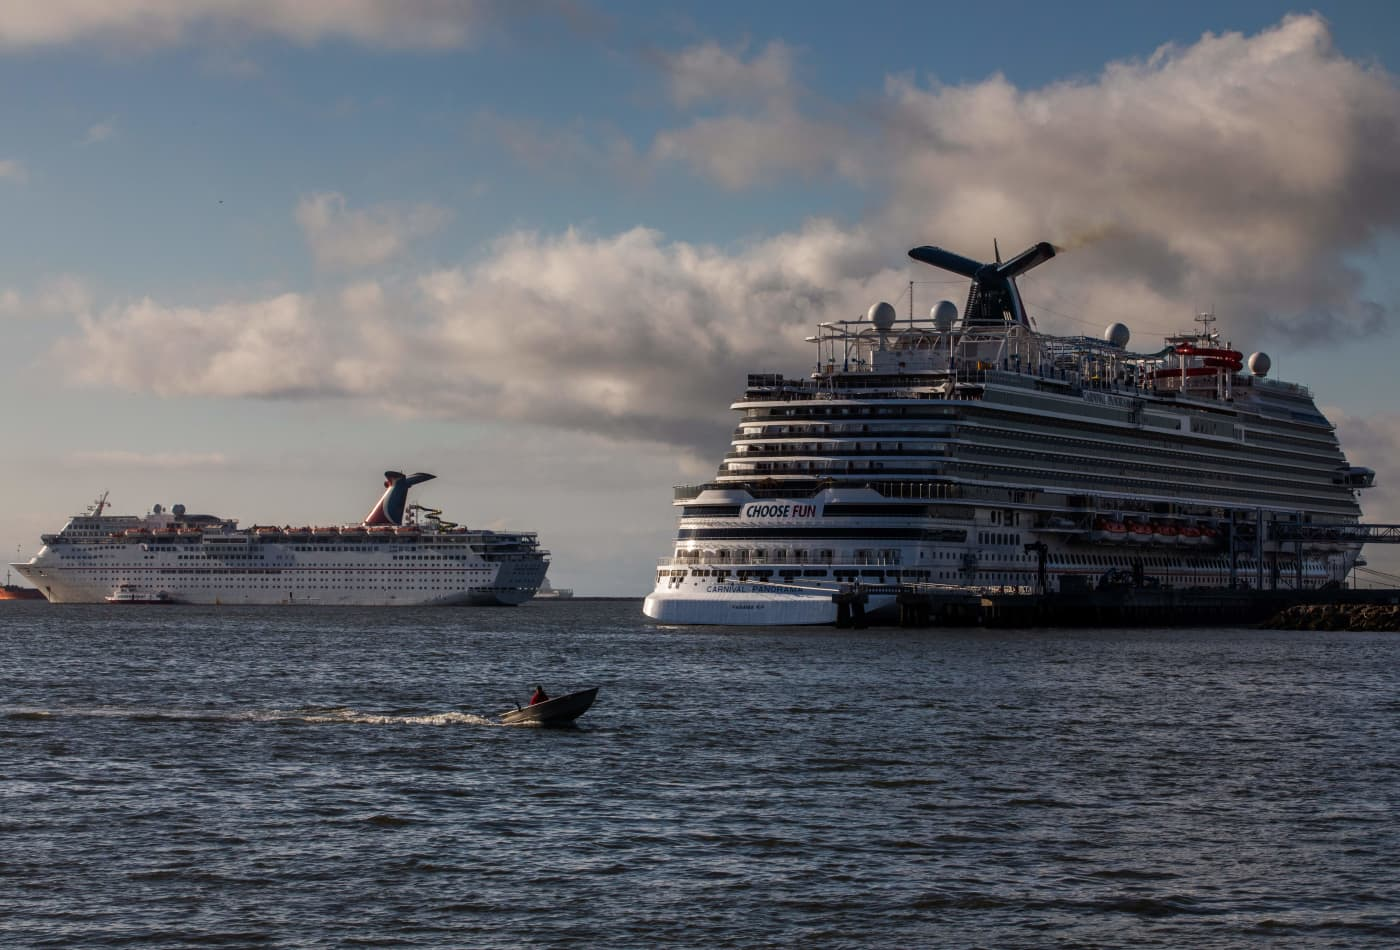 CDC bans U.S. cruises through September, citing 'ongoing' coronavirus outbreaks on ships